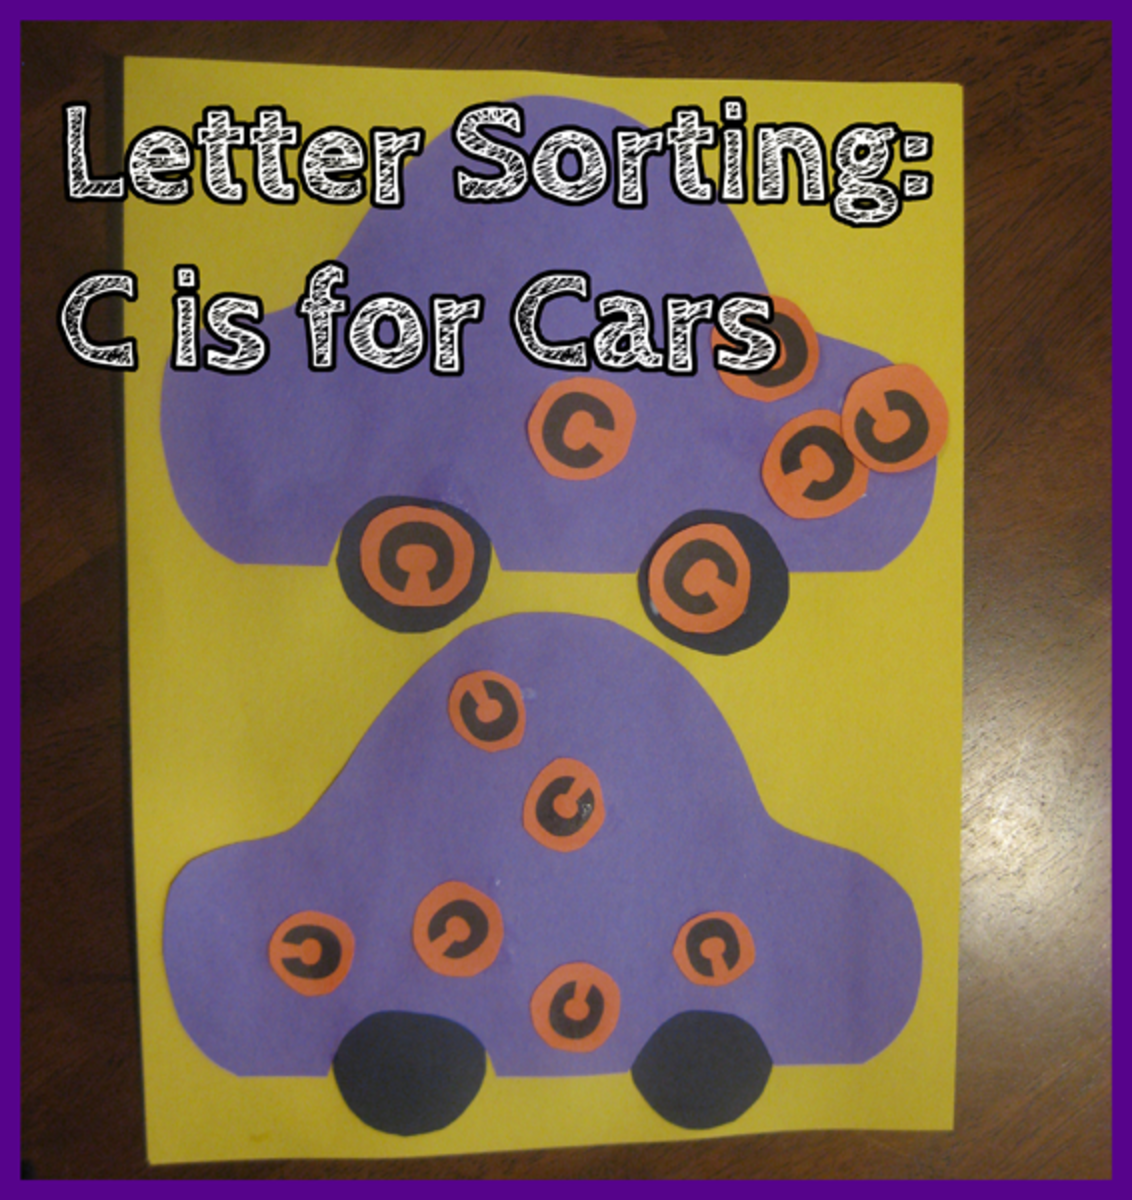 Letter Sorting C is for Cars